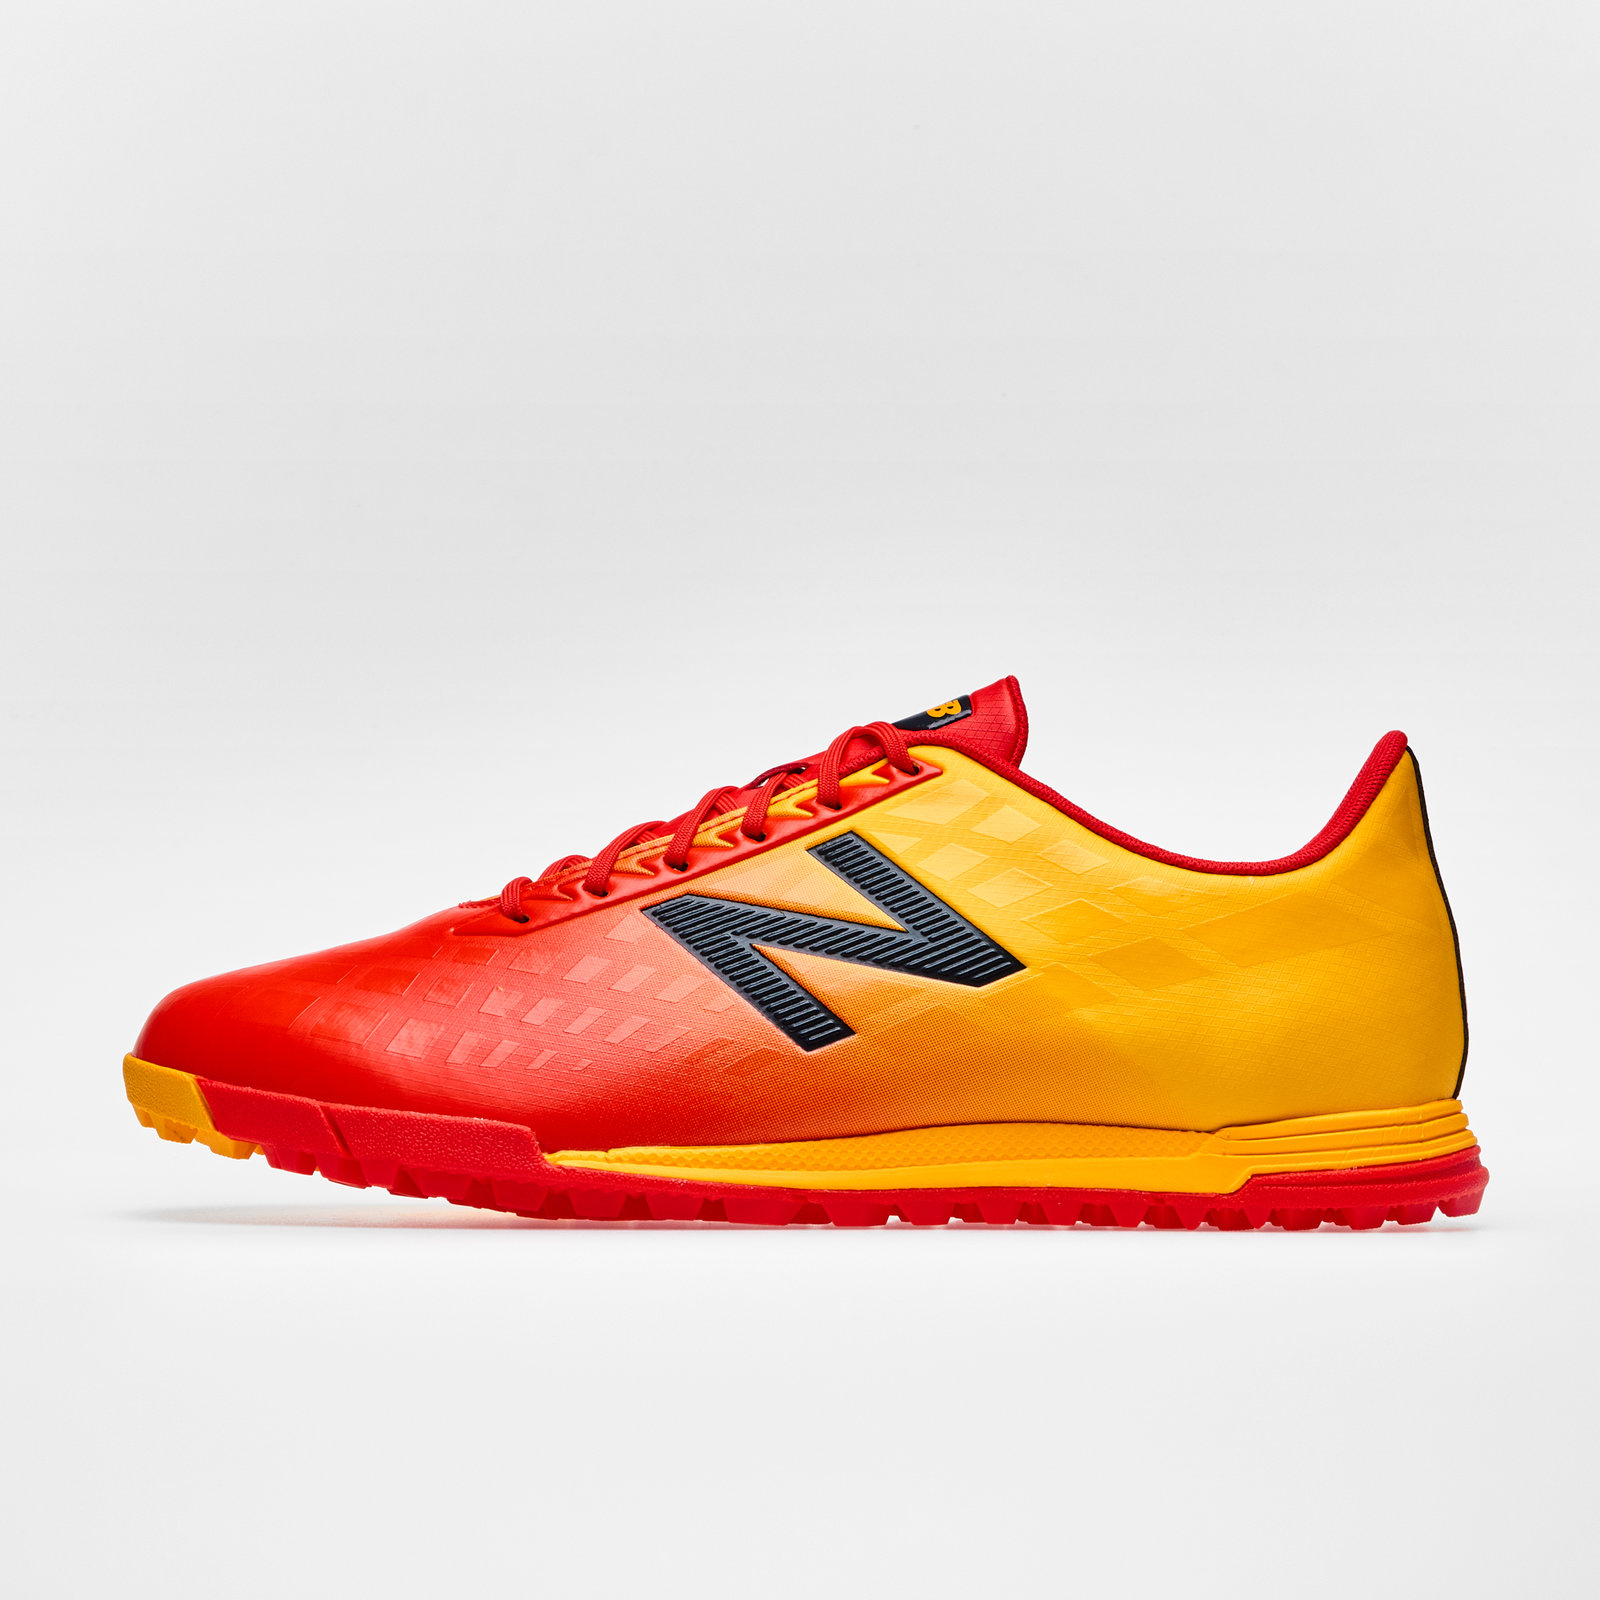 48c982ad573 Details about New Balance Mens Furon 4.0 Dispatch TF Football Boots  Trainers Sports Shoes Red